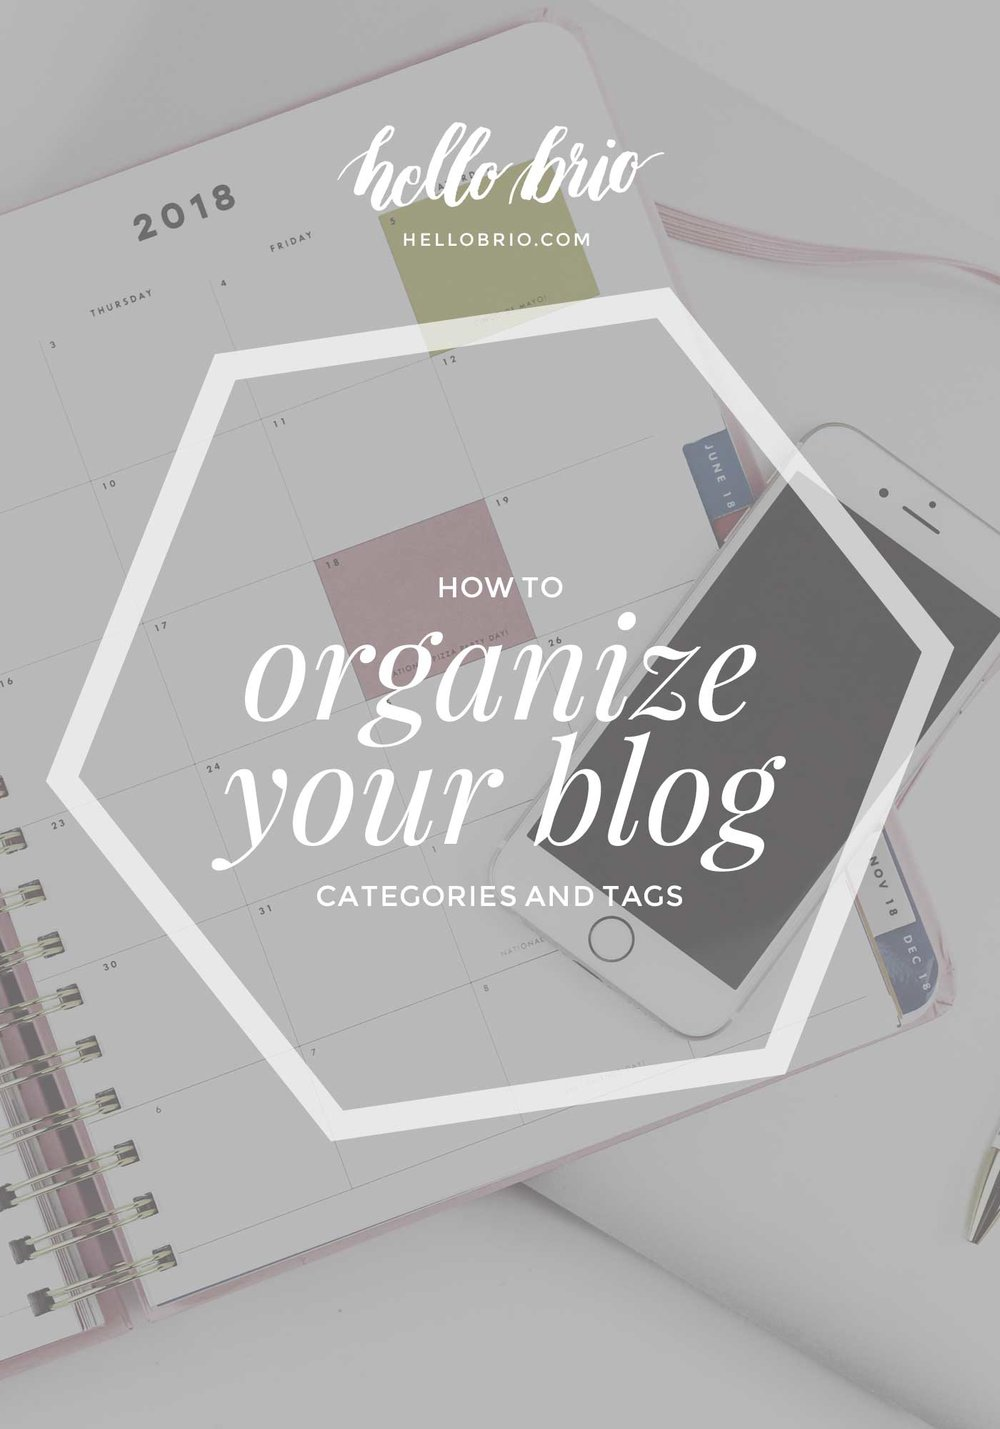 Why it's best to have your blog categories, tags, or labels streamlined, organized, and presented in a clear way to your blog readers